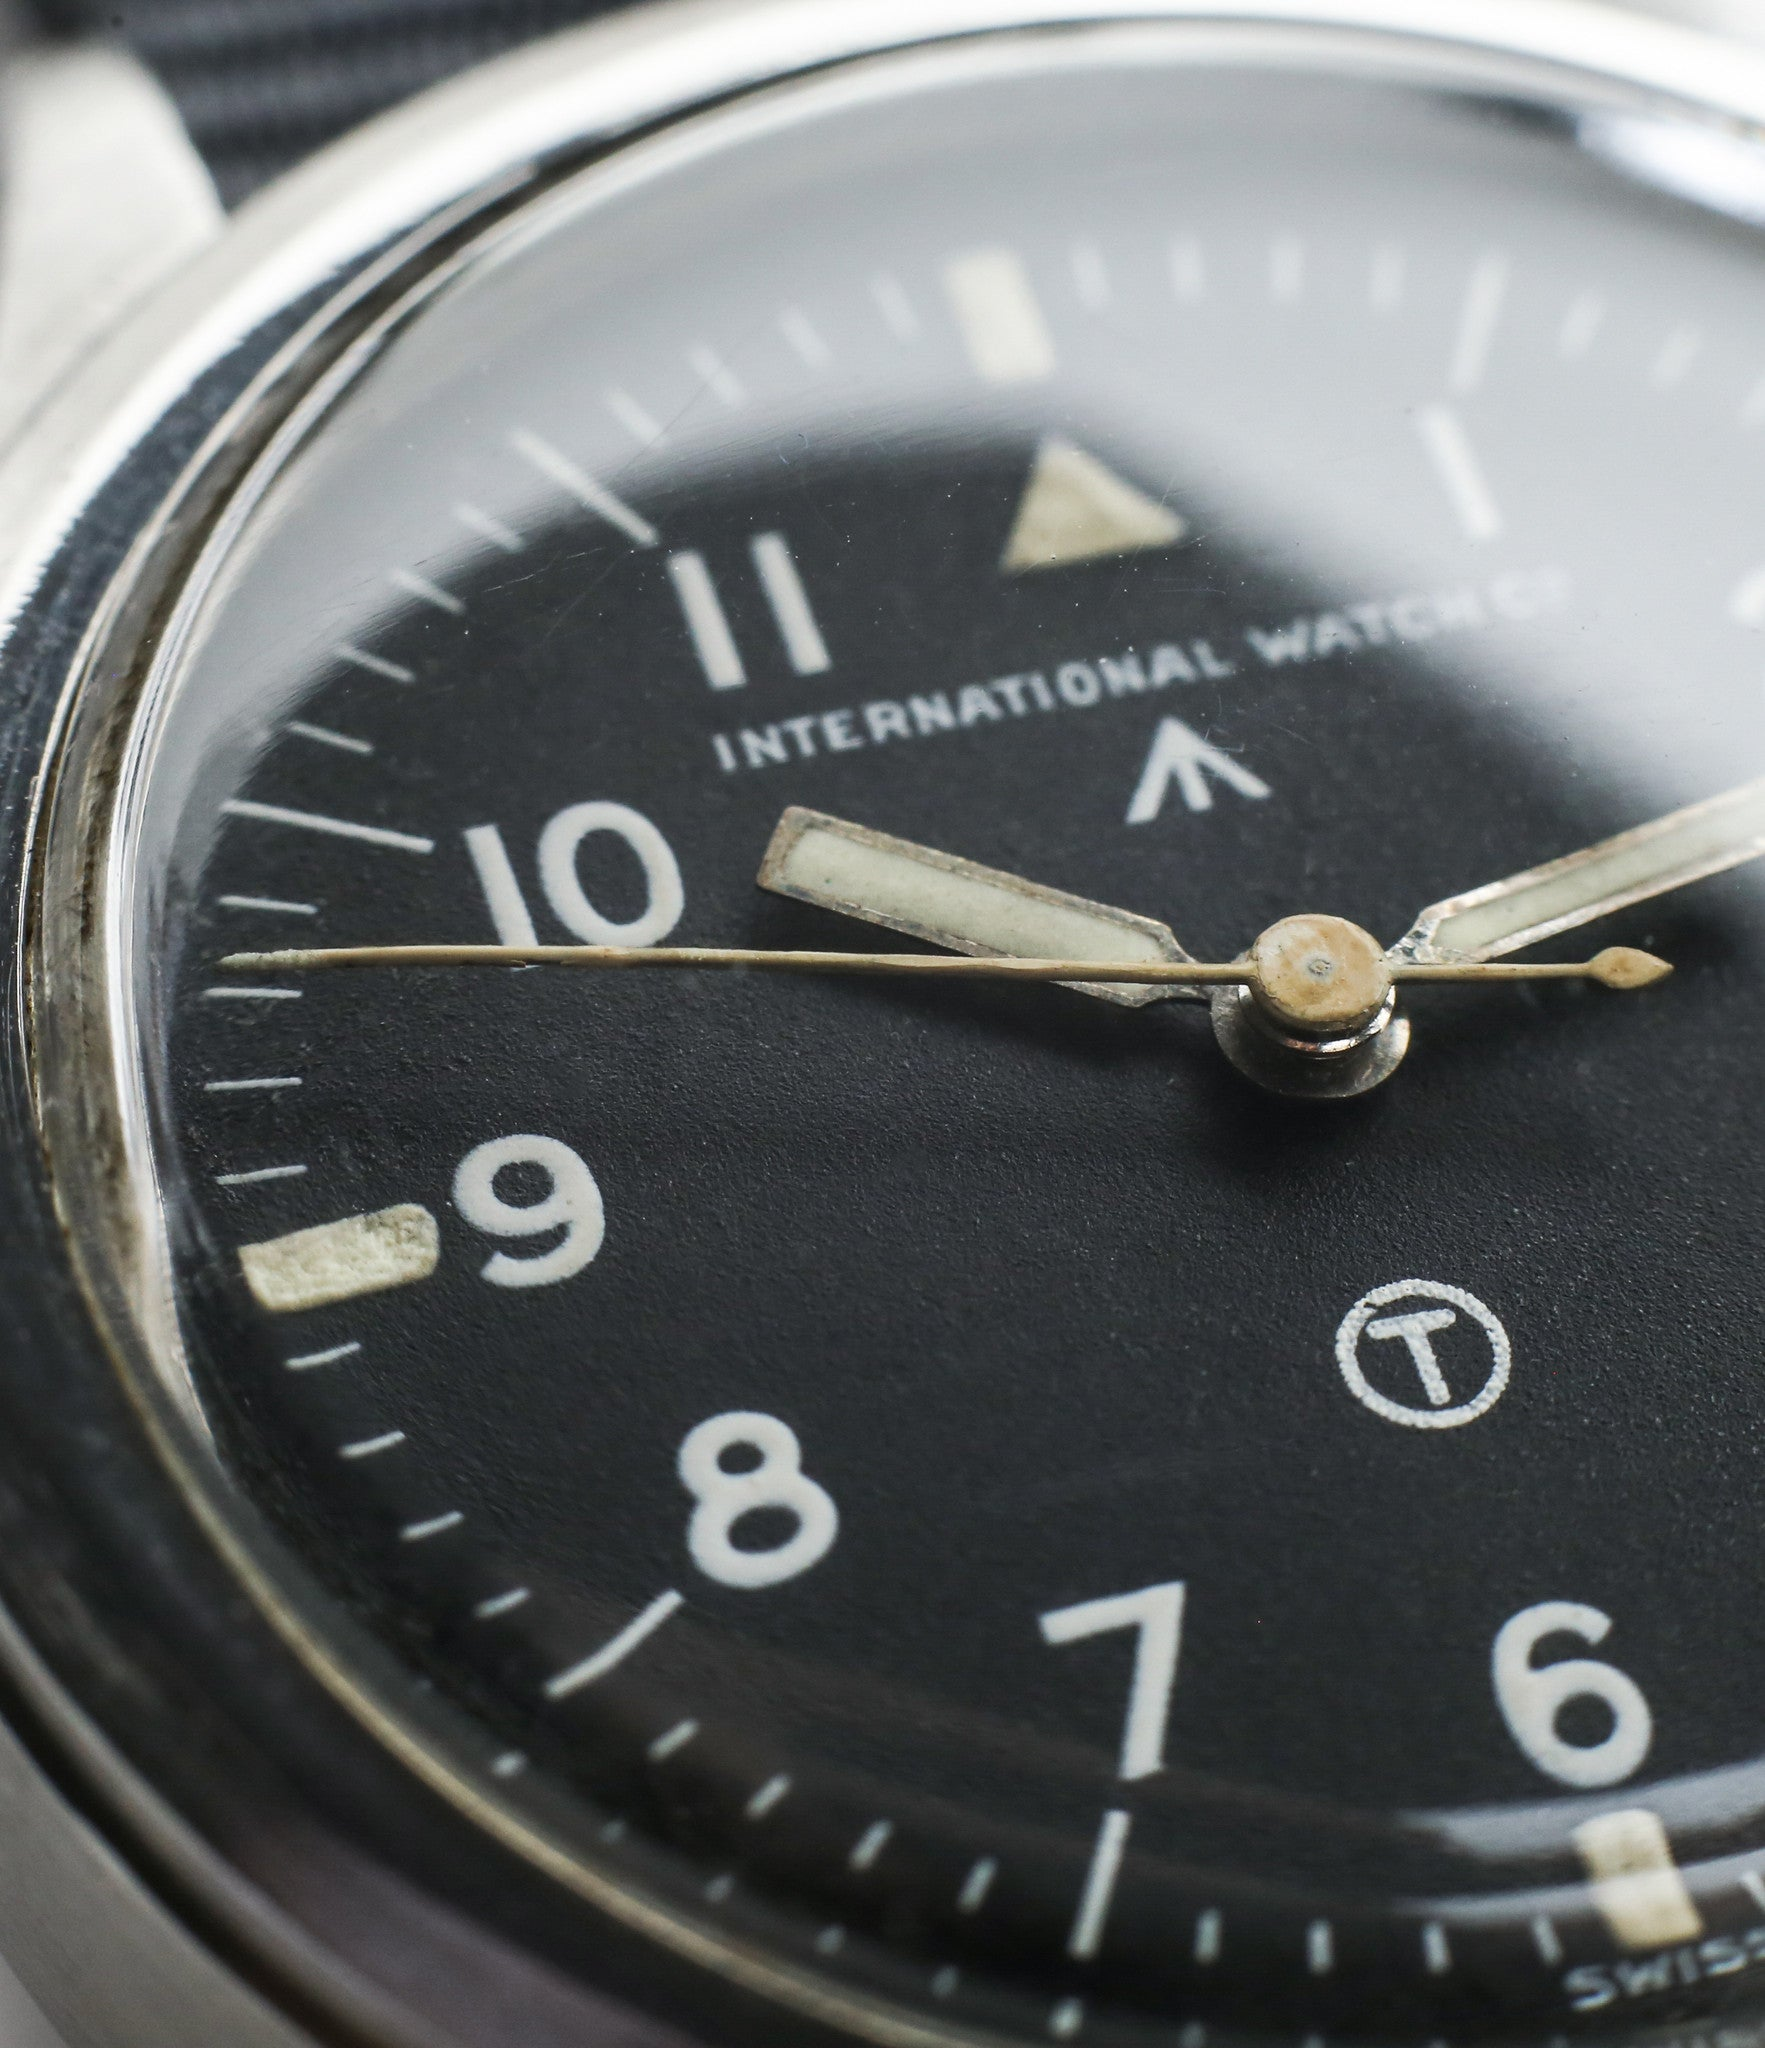 unrestored dial black on buy vintage IWC Mark XI RAF-issued British military pilot watch 6B/346 steel Cal. 89 manual-winding at WATCH XCHANGE London